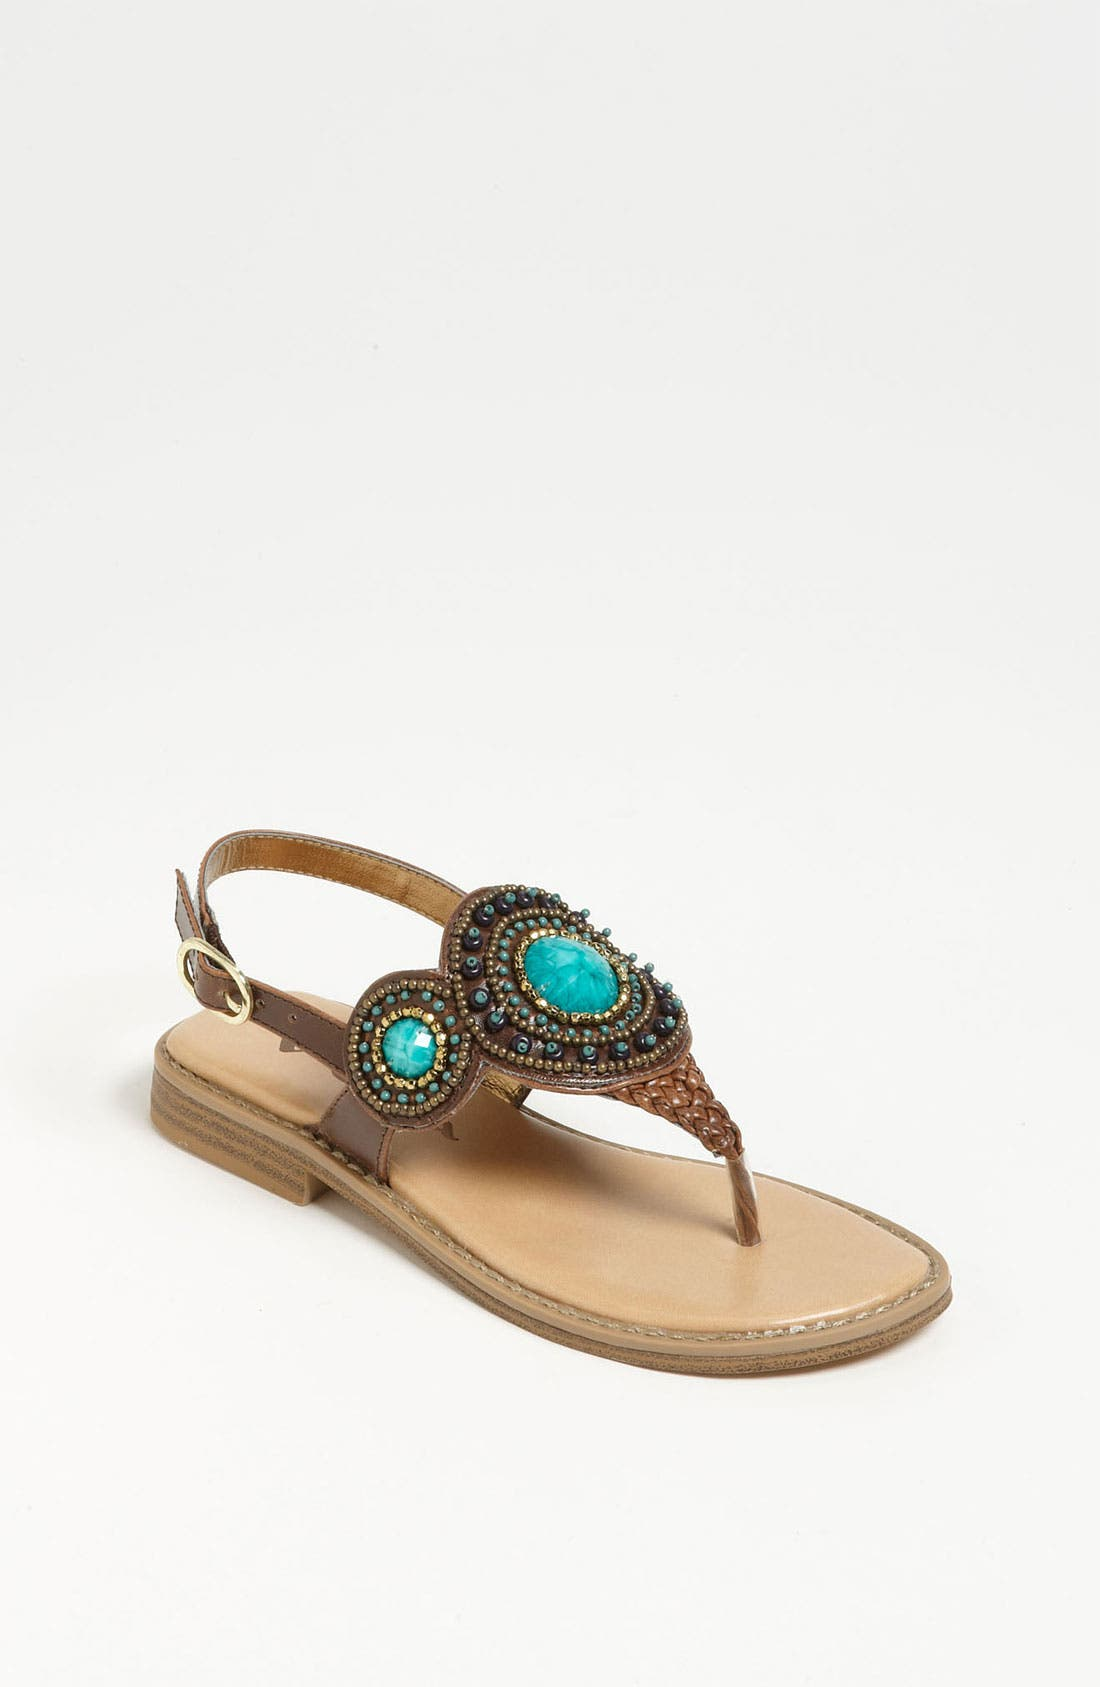 Alternate Image 1 Selected - Nina 'Piazza' Sandal (Walker, Toddler, Little Kid & Big Kid)